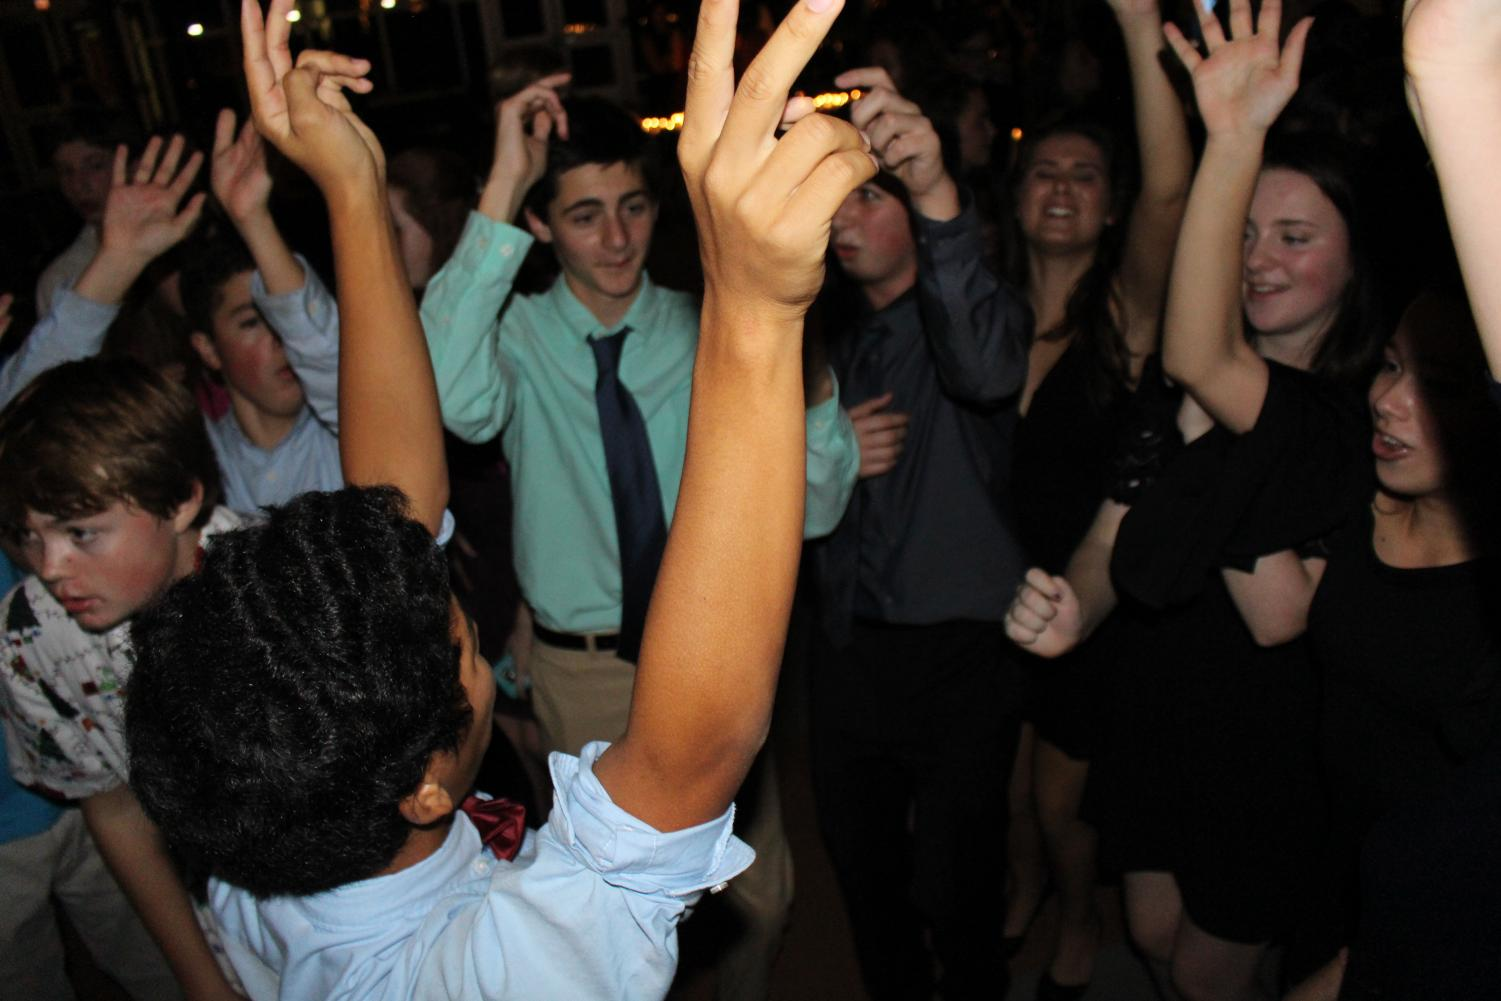 Students danced to hits by artists such as Nicki Minaj and Pitbull at the first ever homecoming dance.